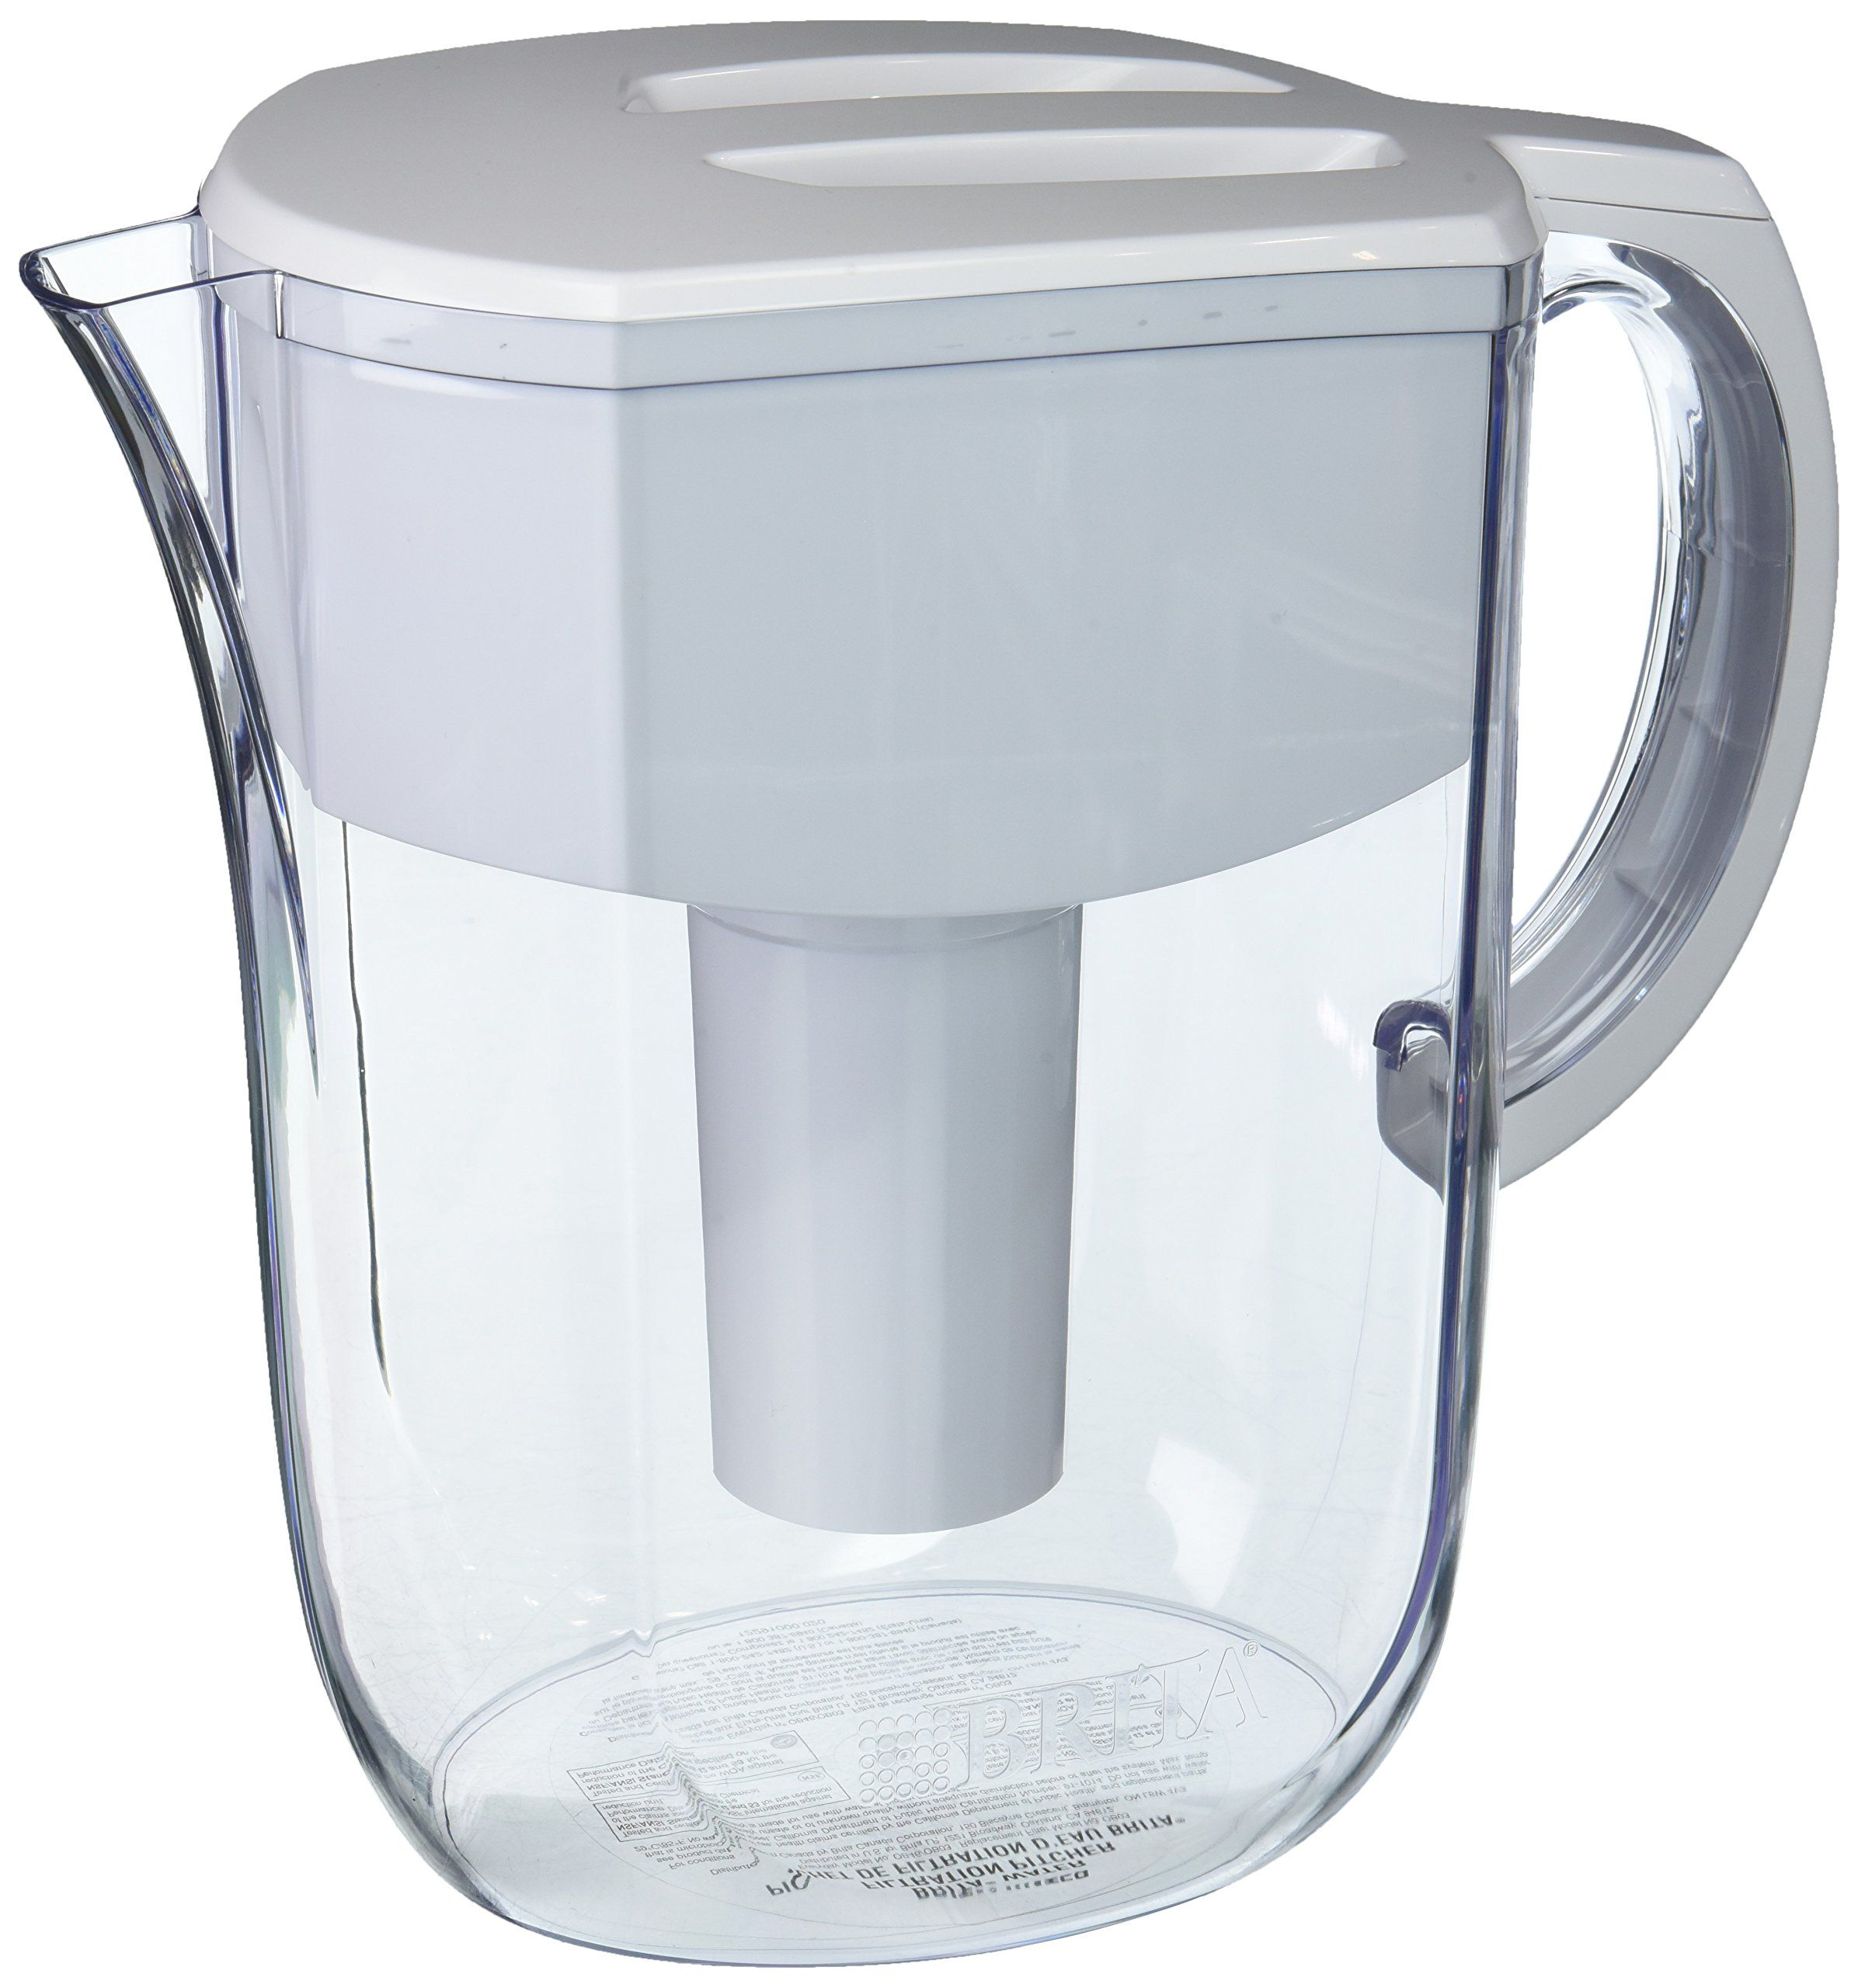 Brita 10060258362050 large 10 cup everyday water pitcher